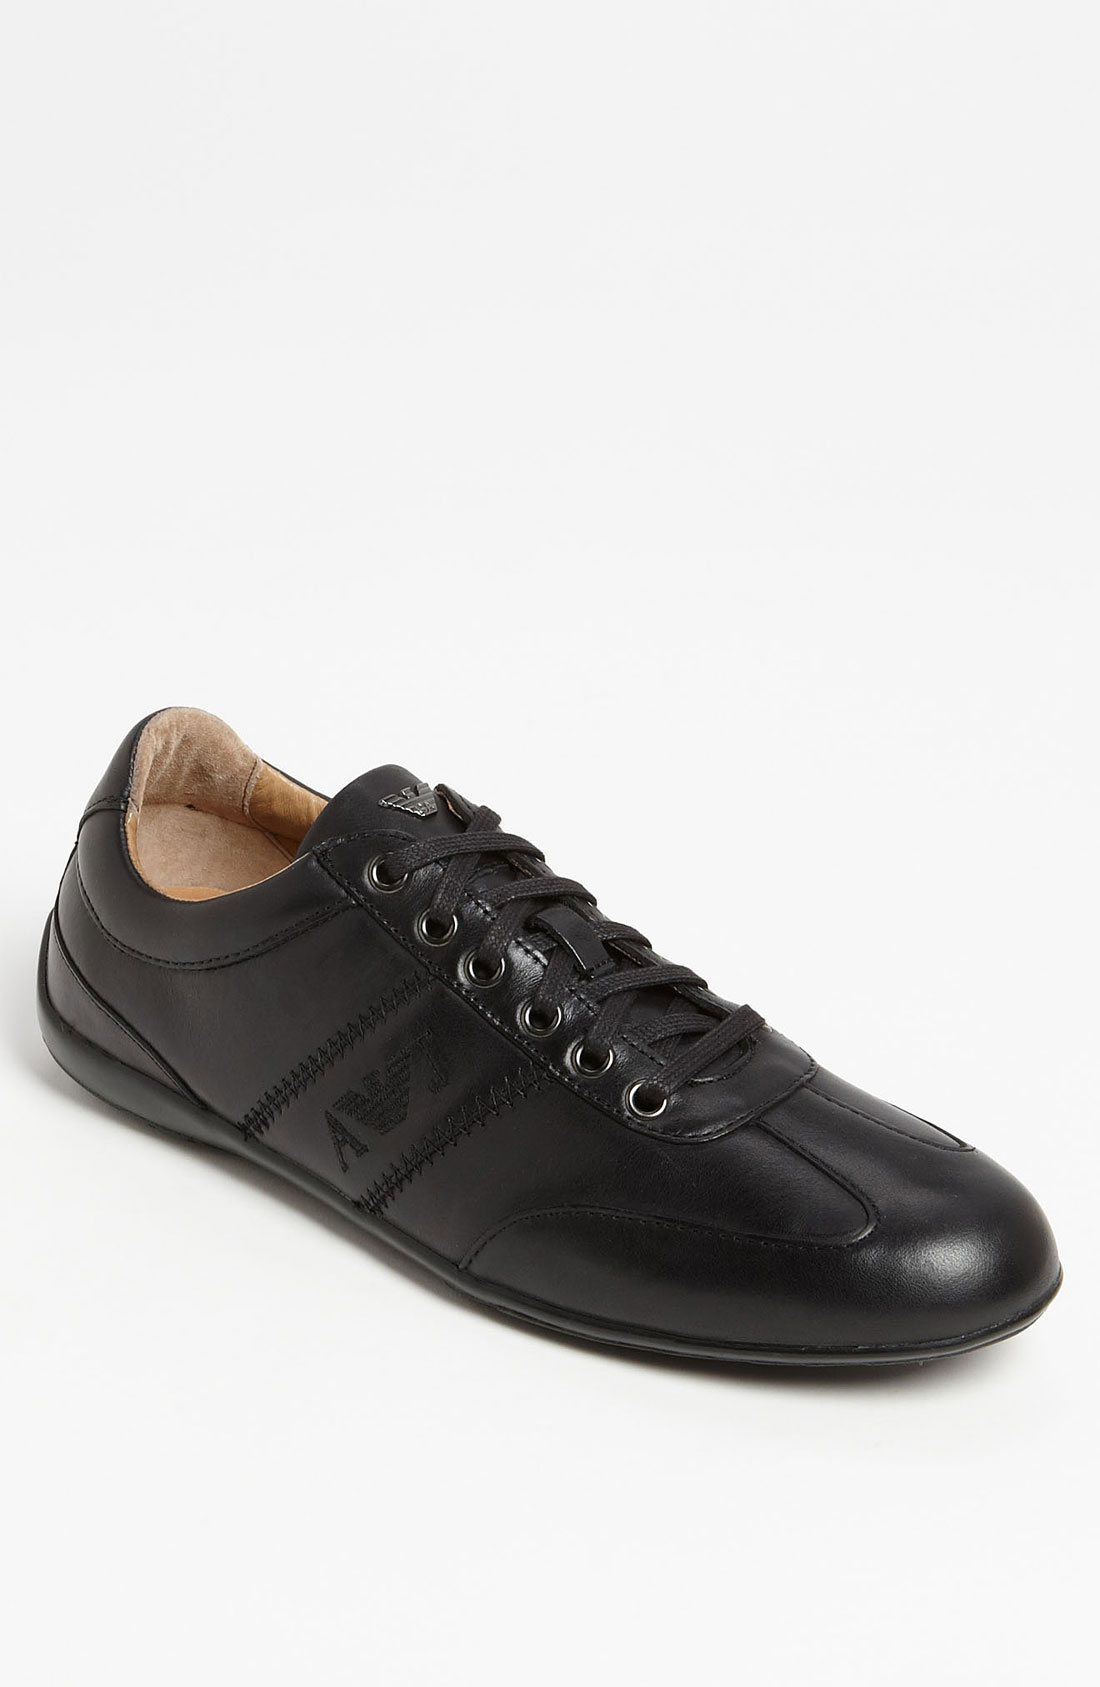 armani jeans leather sneaker in black for men lyst. Black Bedroom Furniture Sets. Home Design Ideas